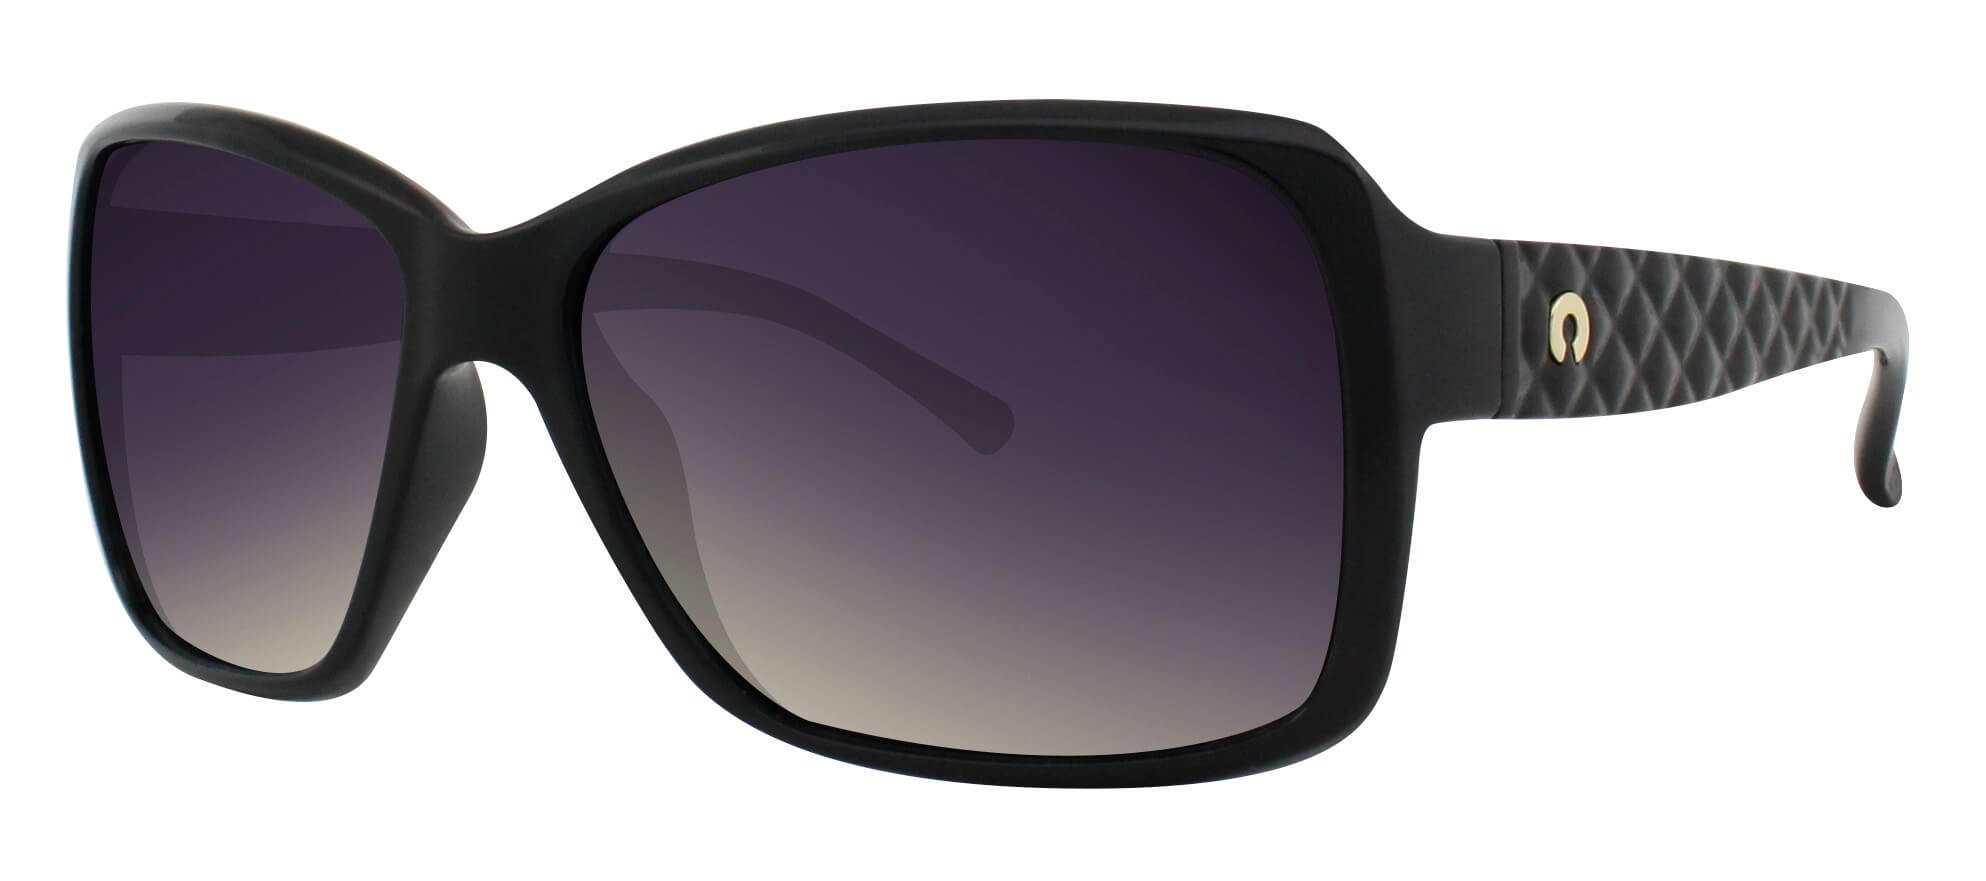 ÓC SECRET KATE GLOSS BLACK / POLARIZED GRADIENT GRAY